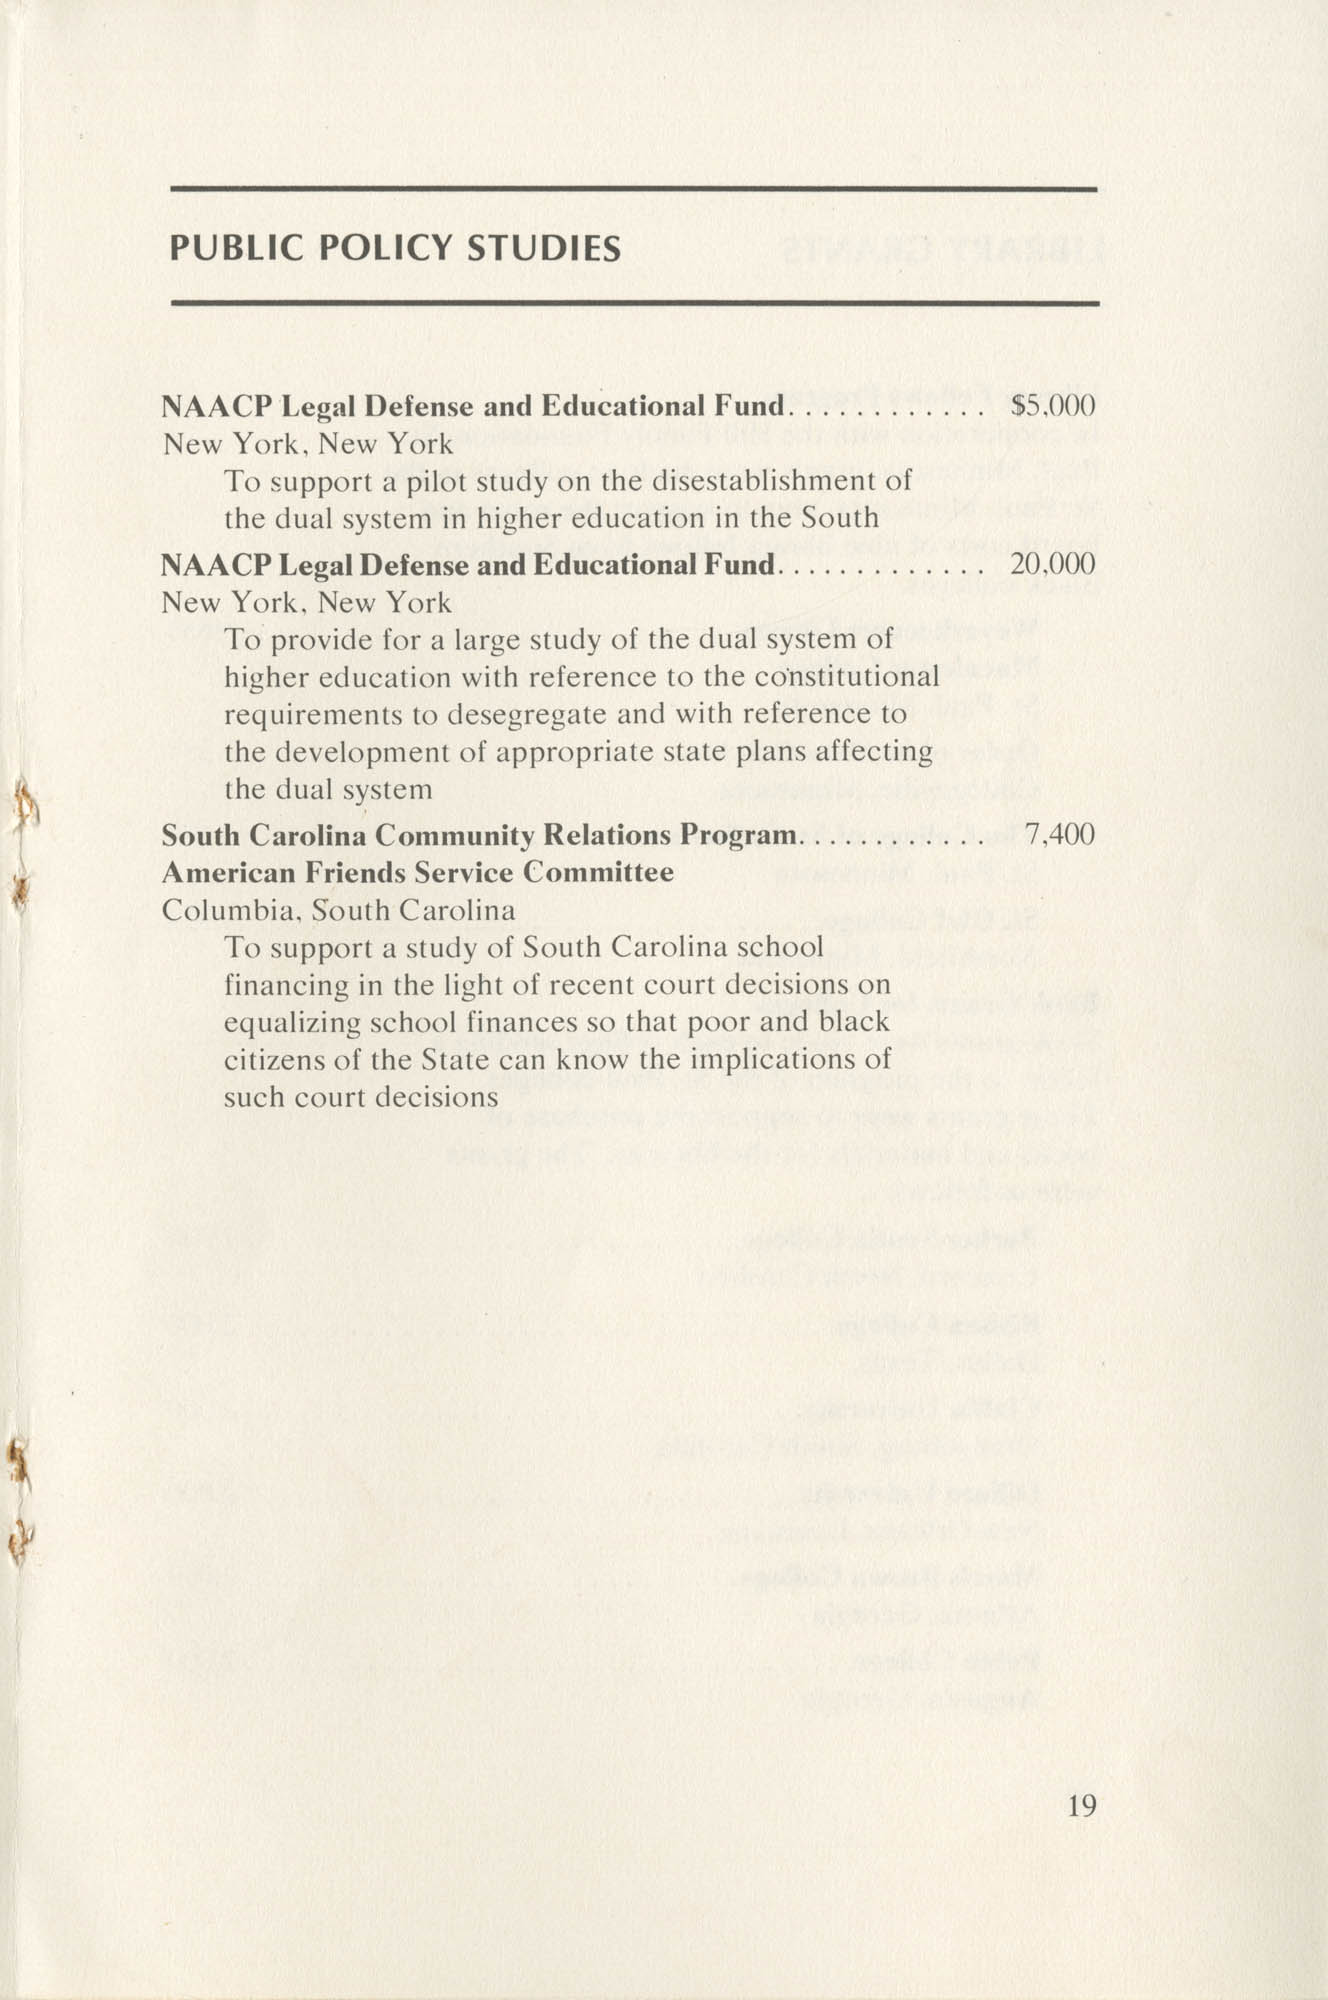 Southern Education Foundation, Annual Report 1971-1972, Page 19